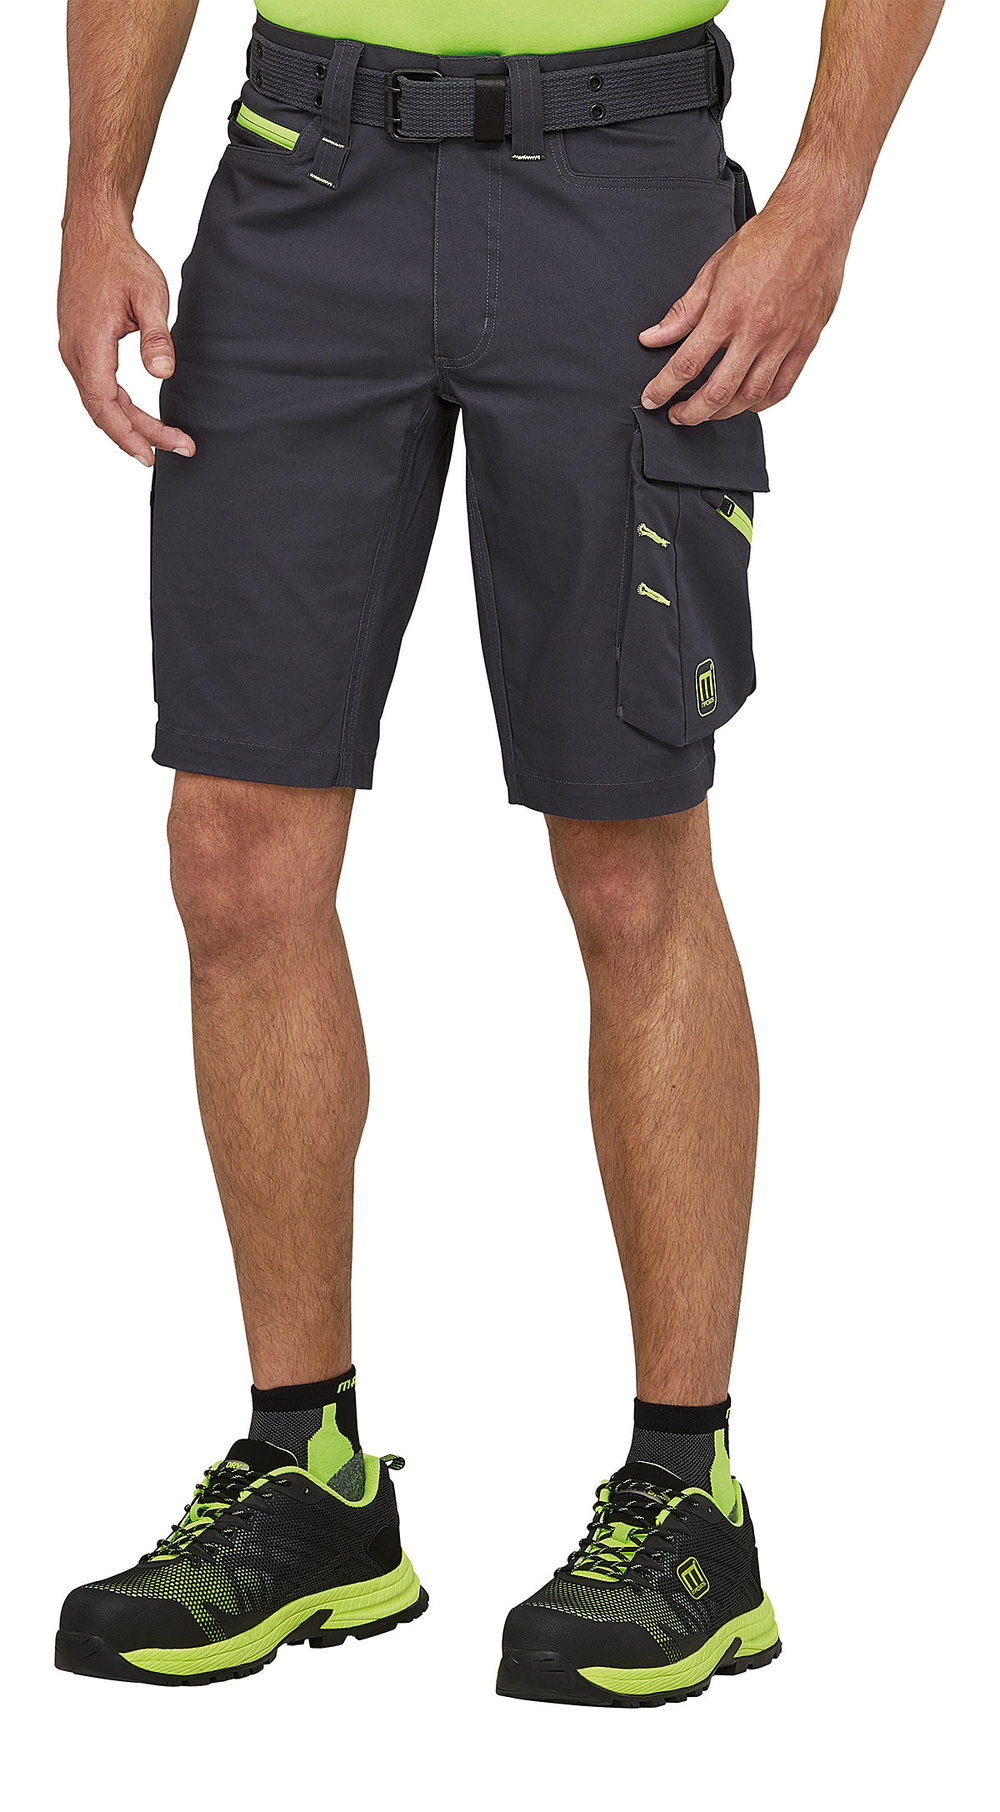 PRONEON FUNCTIONAL WORK SHORTS MALE MACGREY